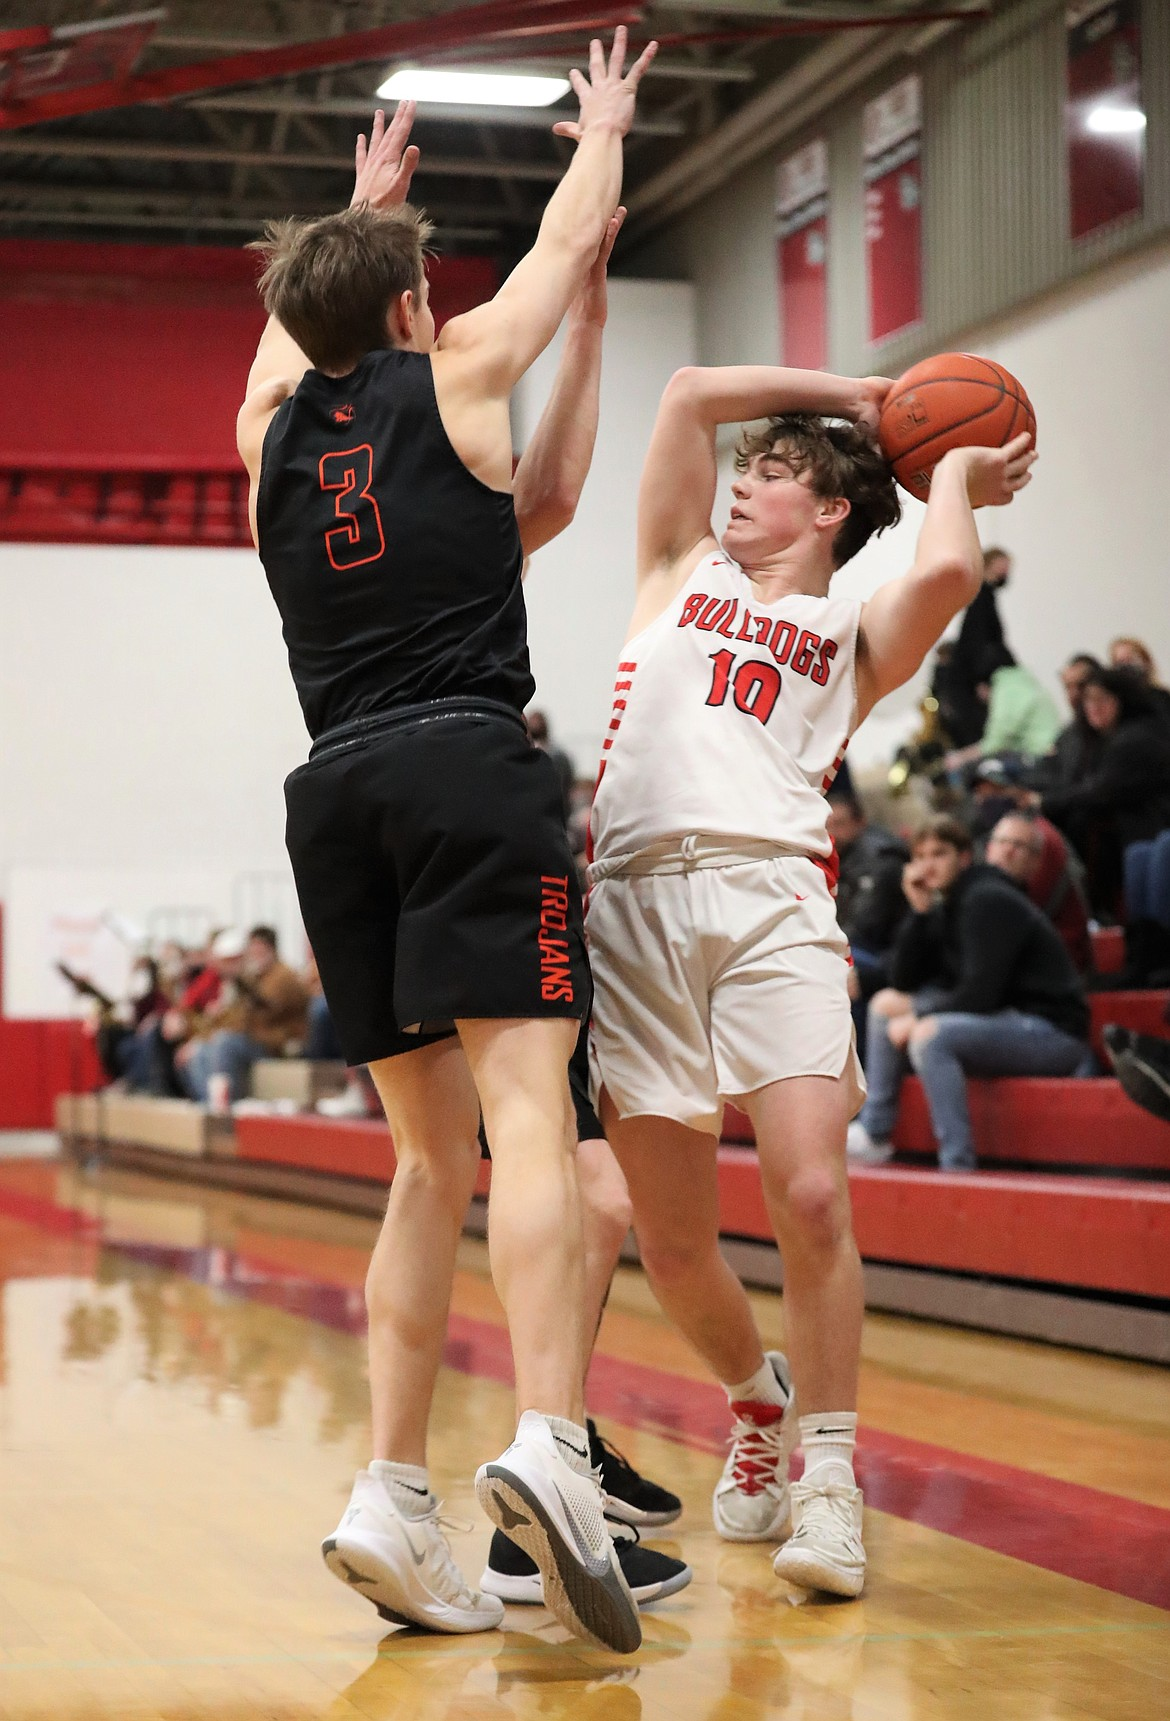 Arie VanDenBerg looks to pass the ball to an open teammate while trying to avoid stepping out of bounds on Wednesday.